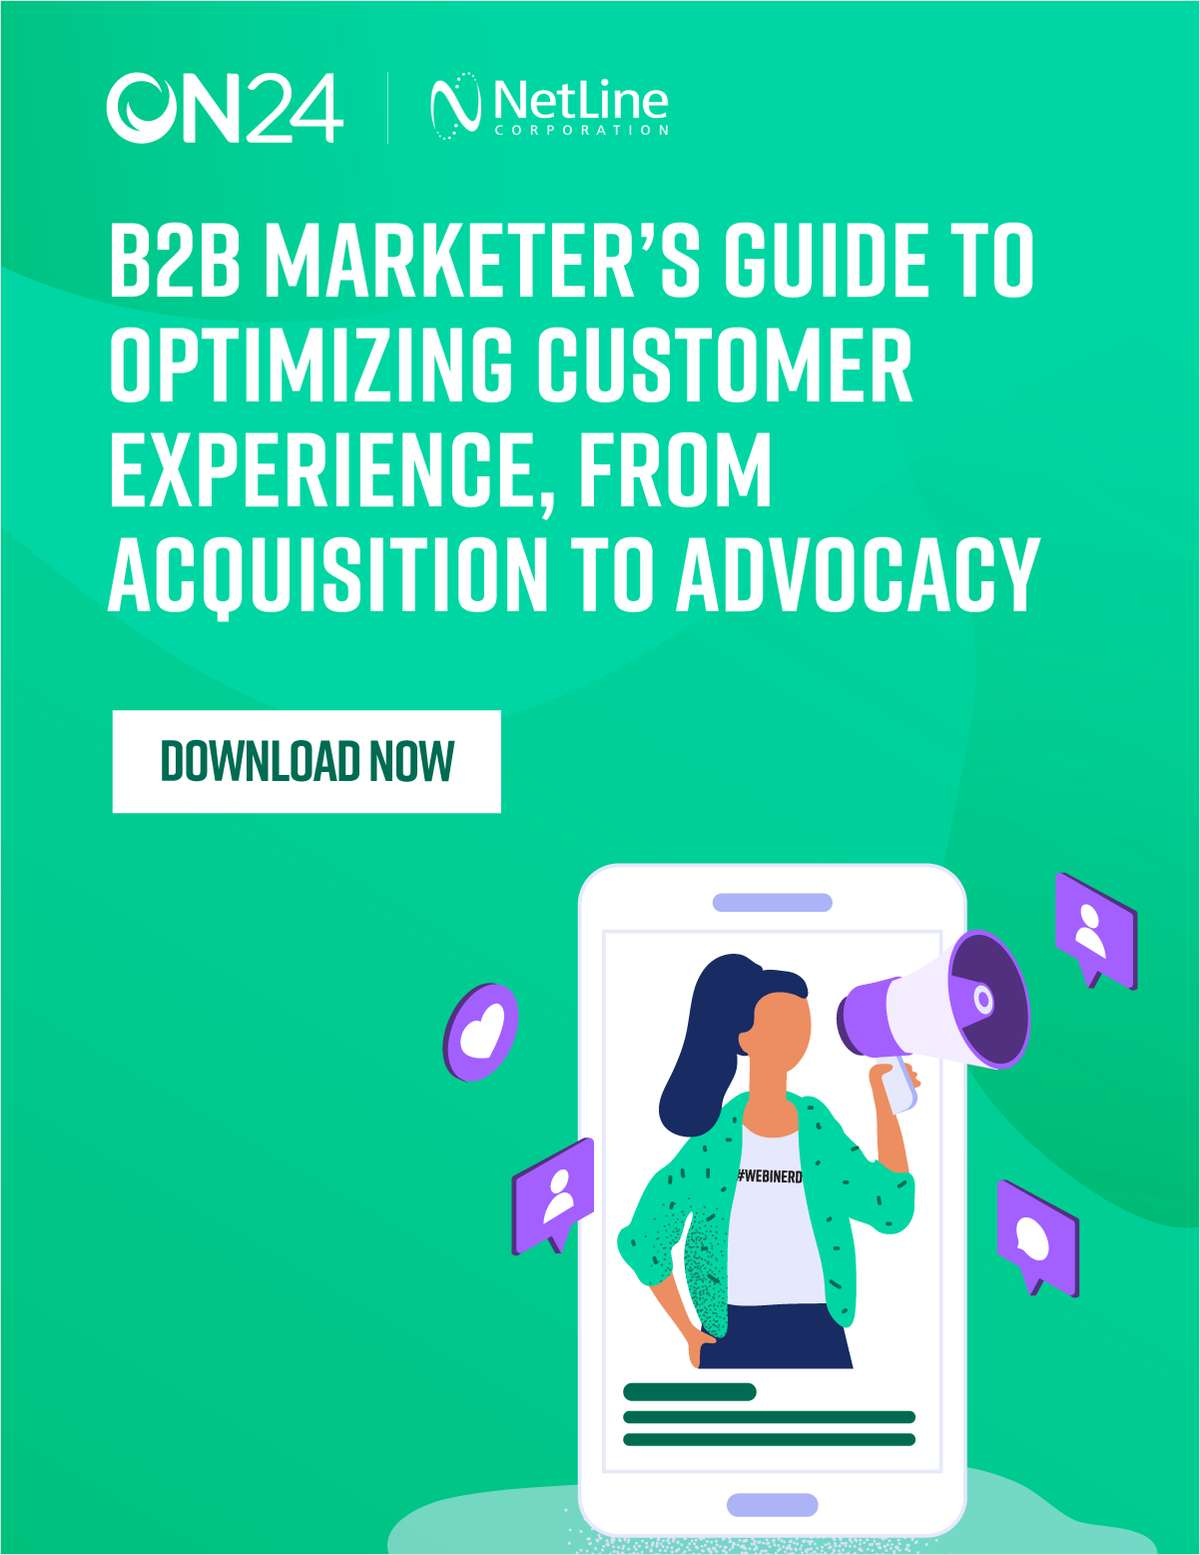 B2B Marketer's Guide to Optimizing Customer Experience, From Acquisition to Advocacy